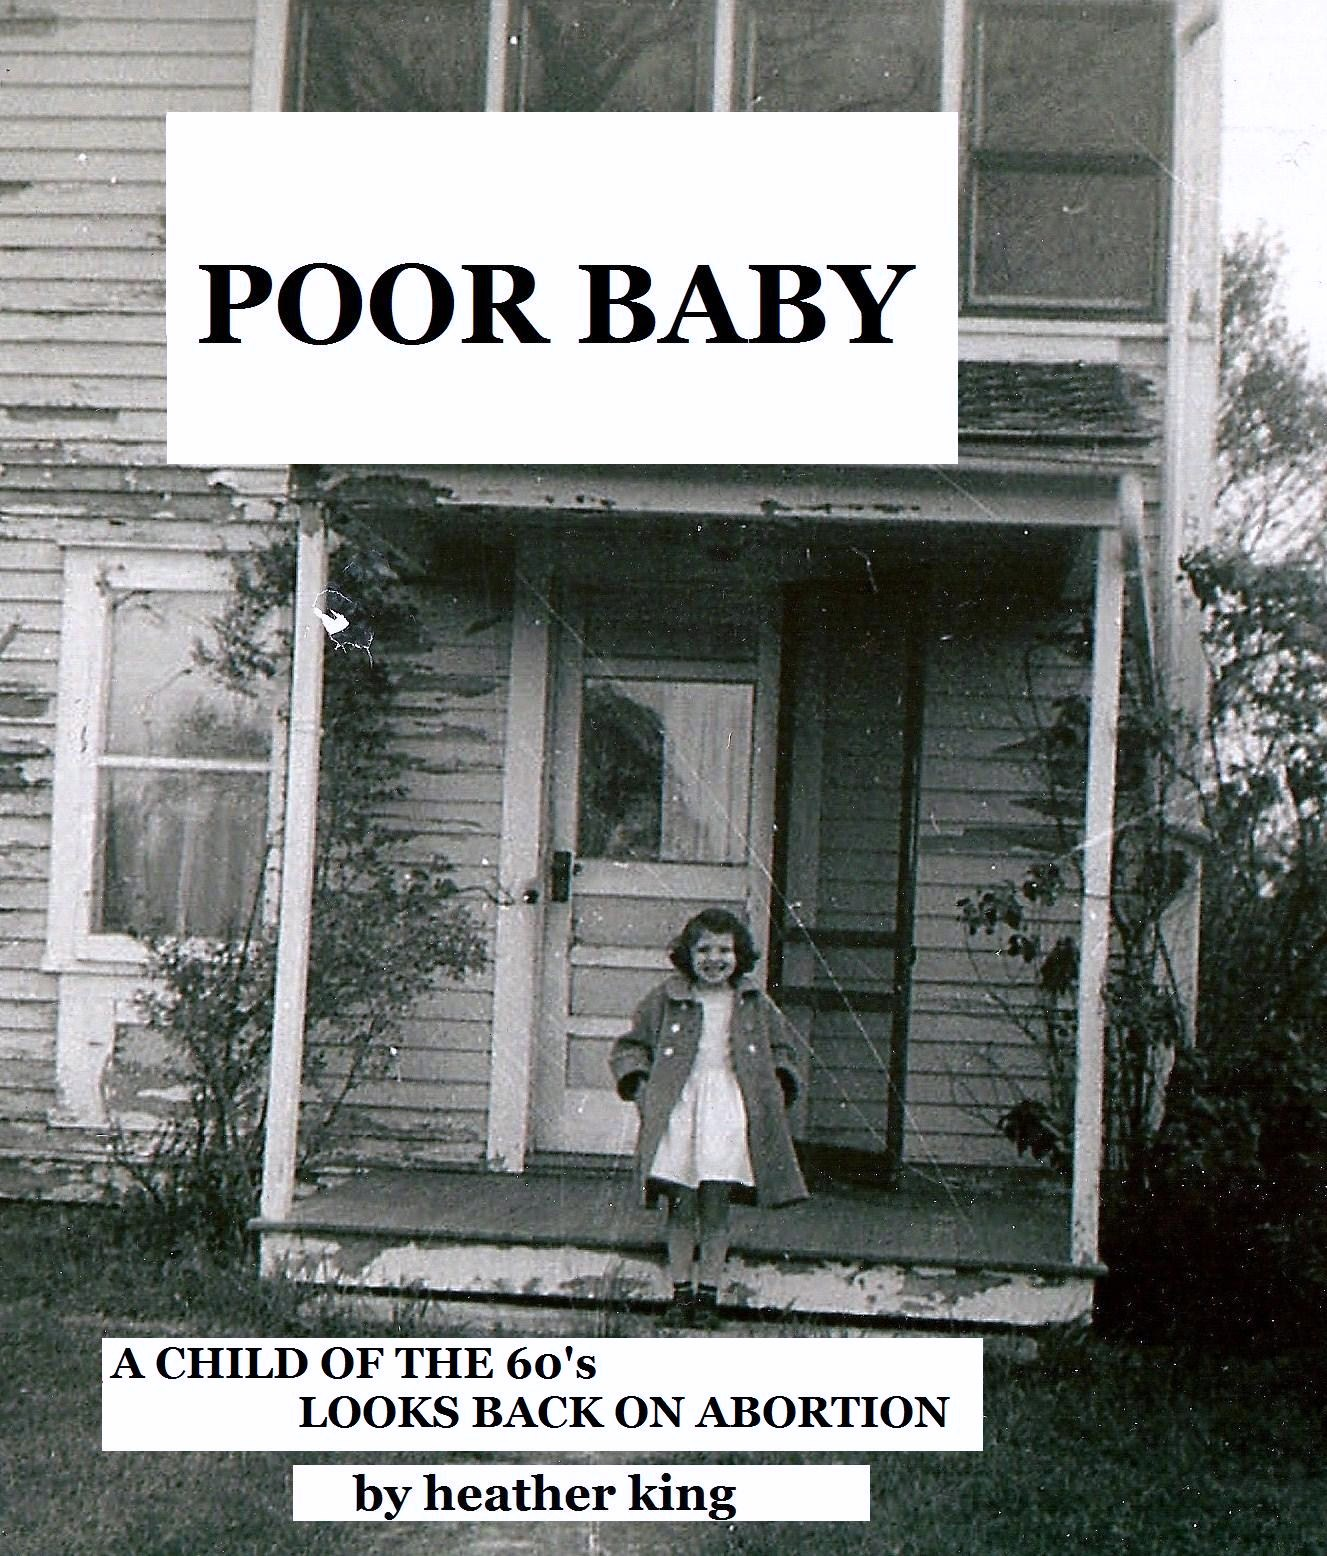 HEATHER KING: POOR BABY: A Child of the 60's Looks Back on